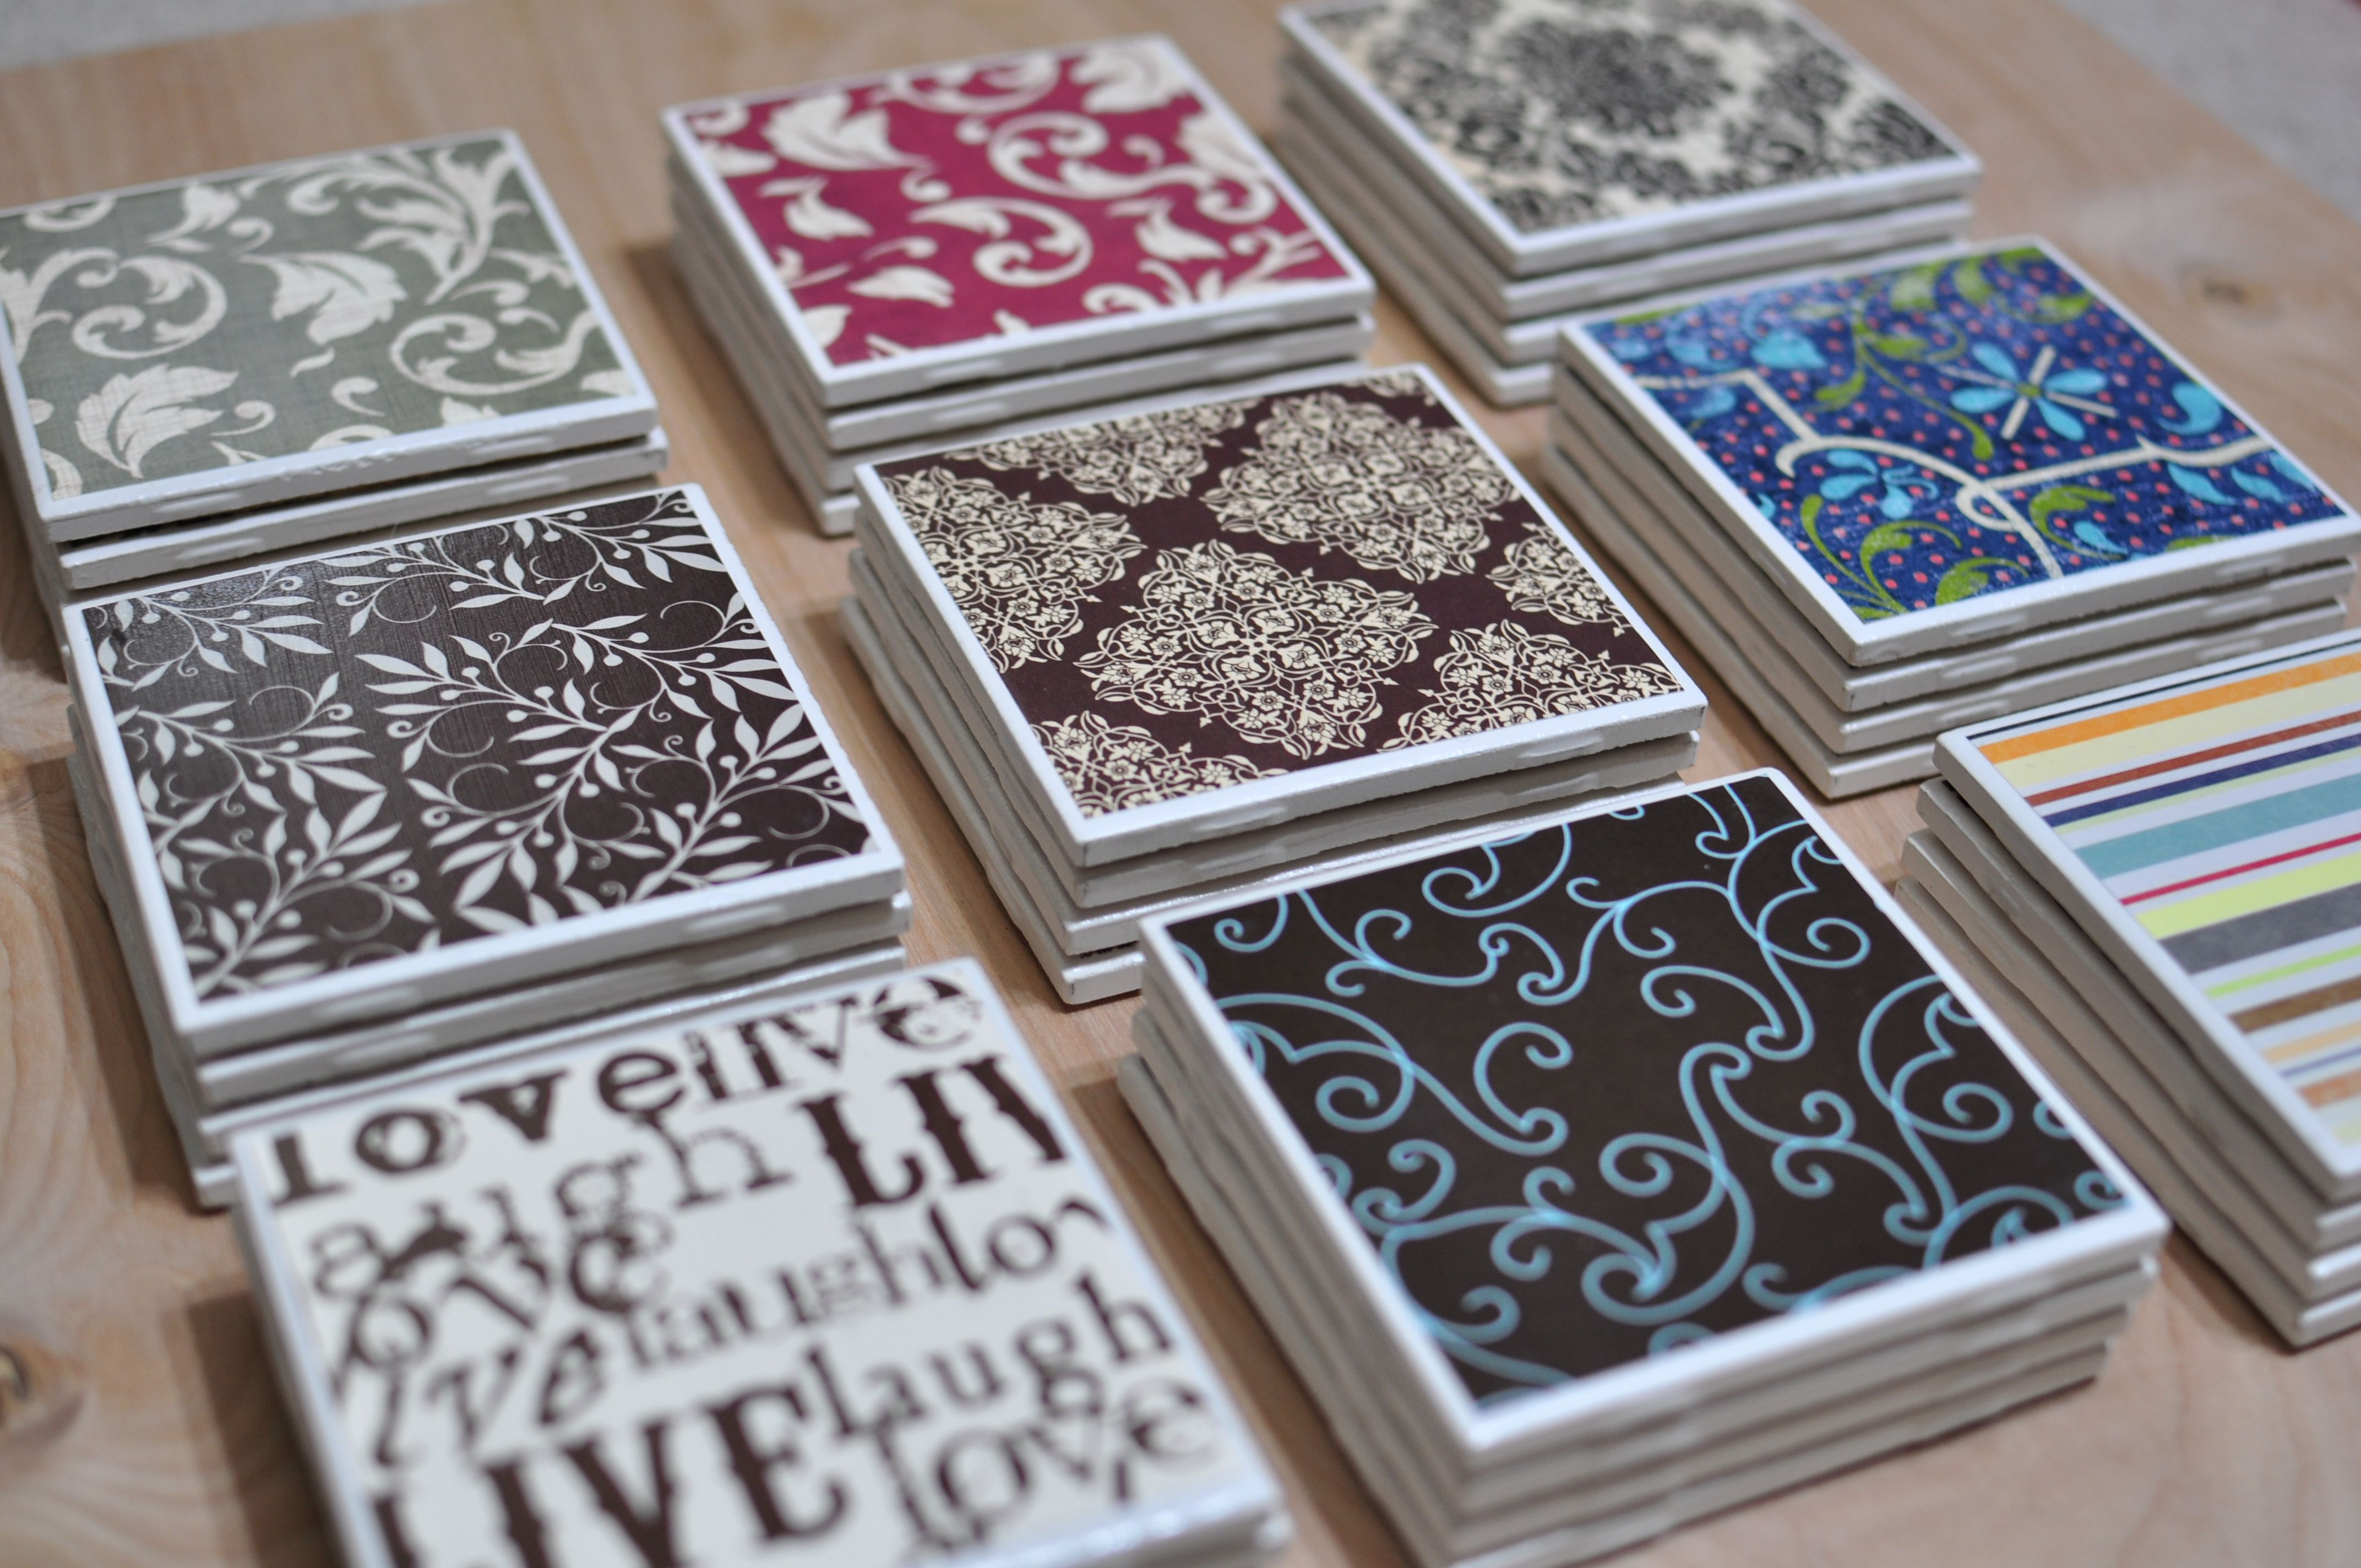 Diy Coasters Using Inexpensive Ceramic Tiles From Home Improvement